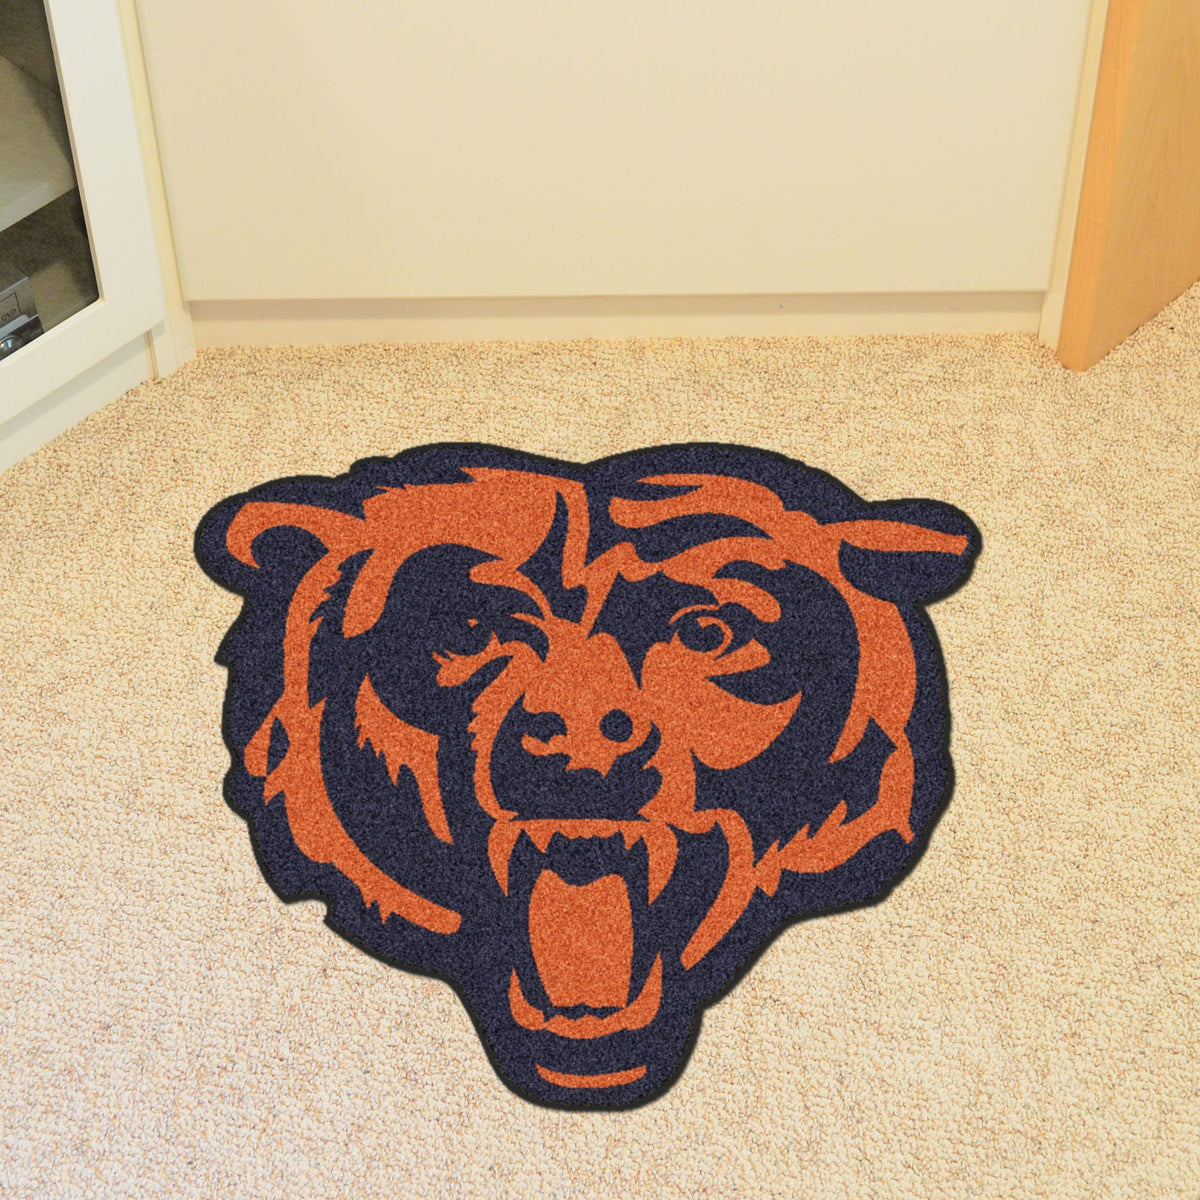 "NFL - Mascot Mat, 36"" x 34.8"" NFL Mats, Custom Shape Rugs, Mascot Mat, NFL, Home Fan Mats Chicago Bears"